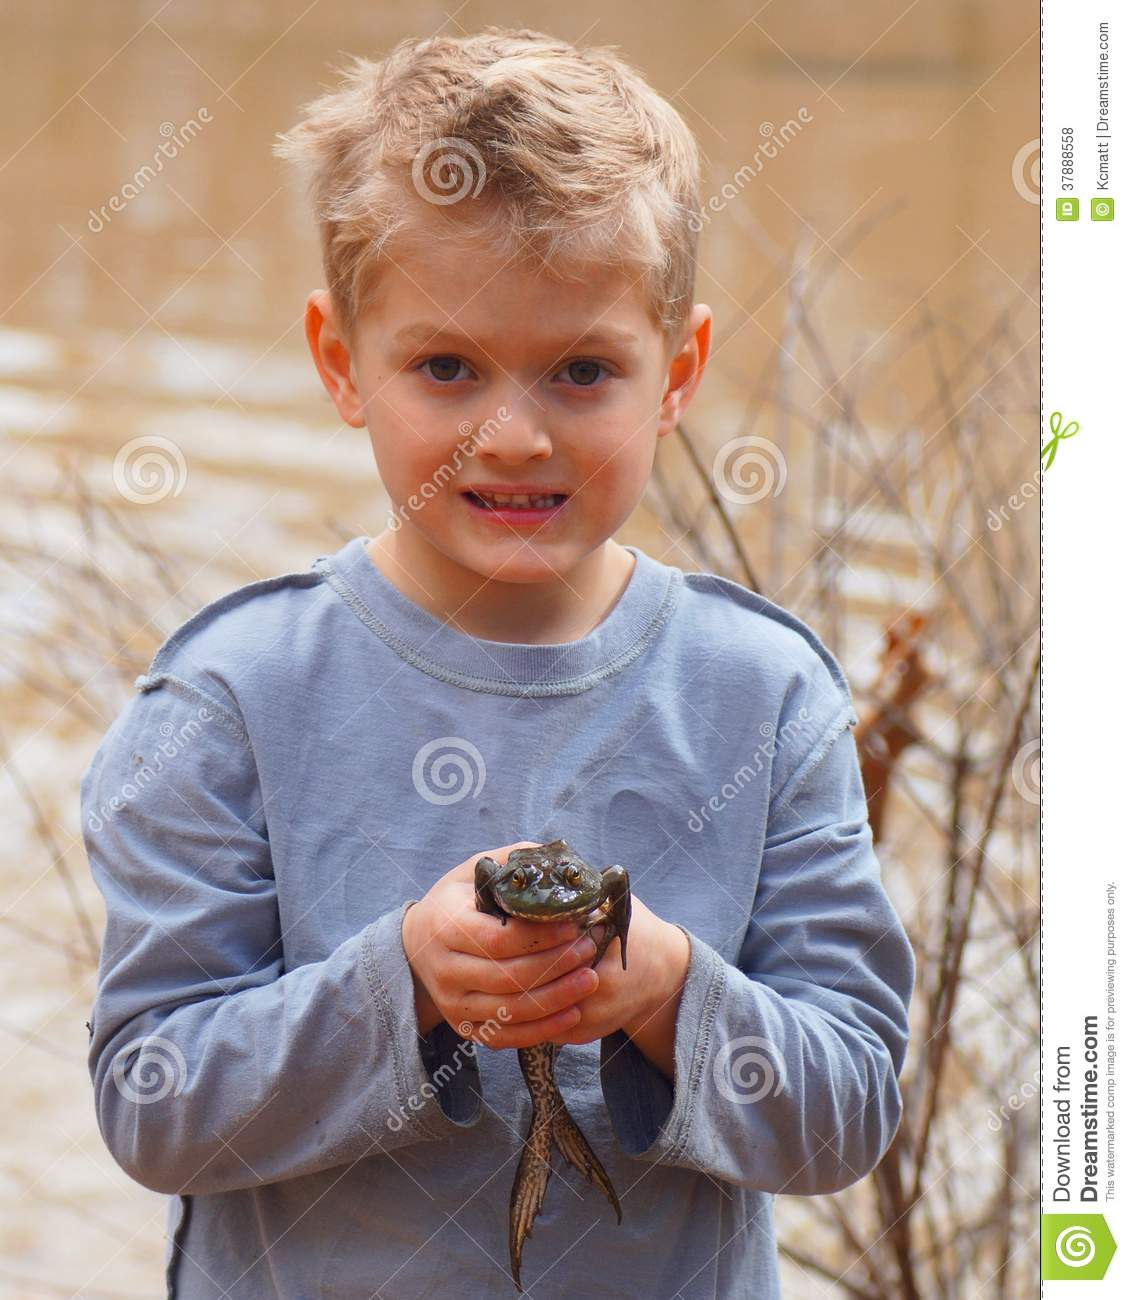 Child holding a large bullfrog